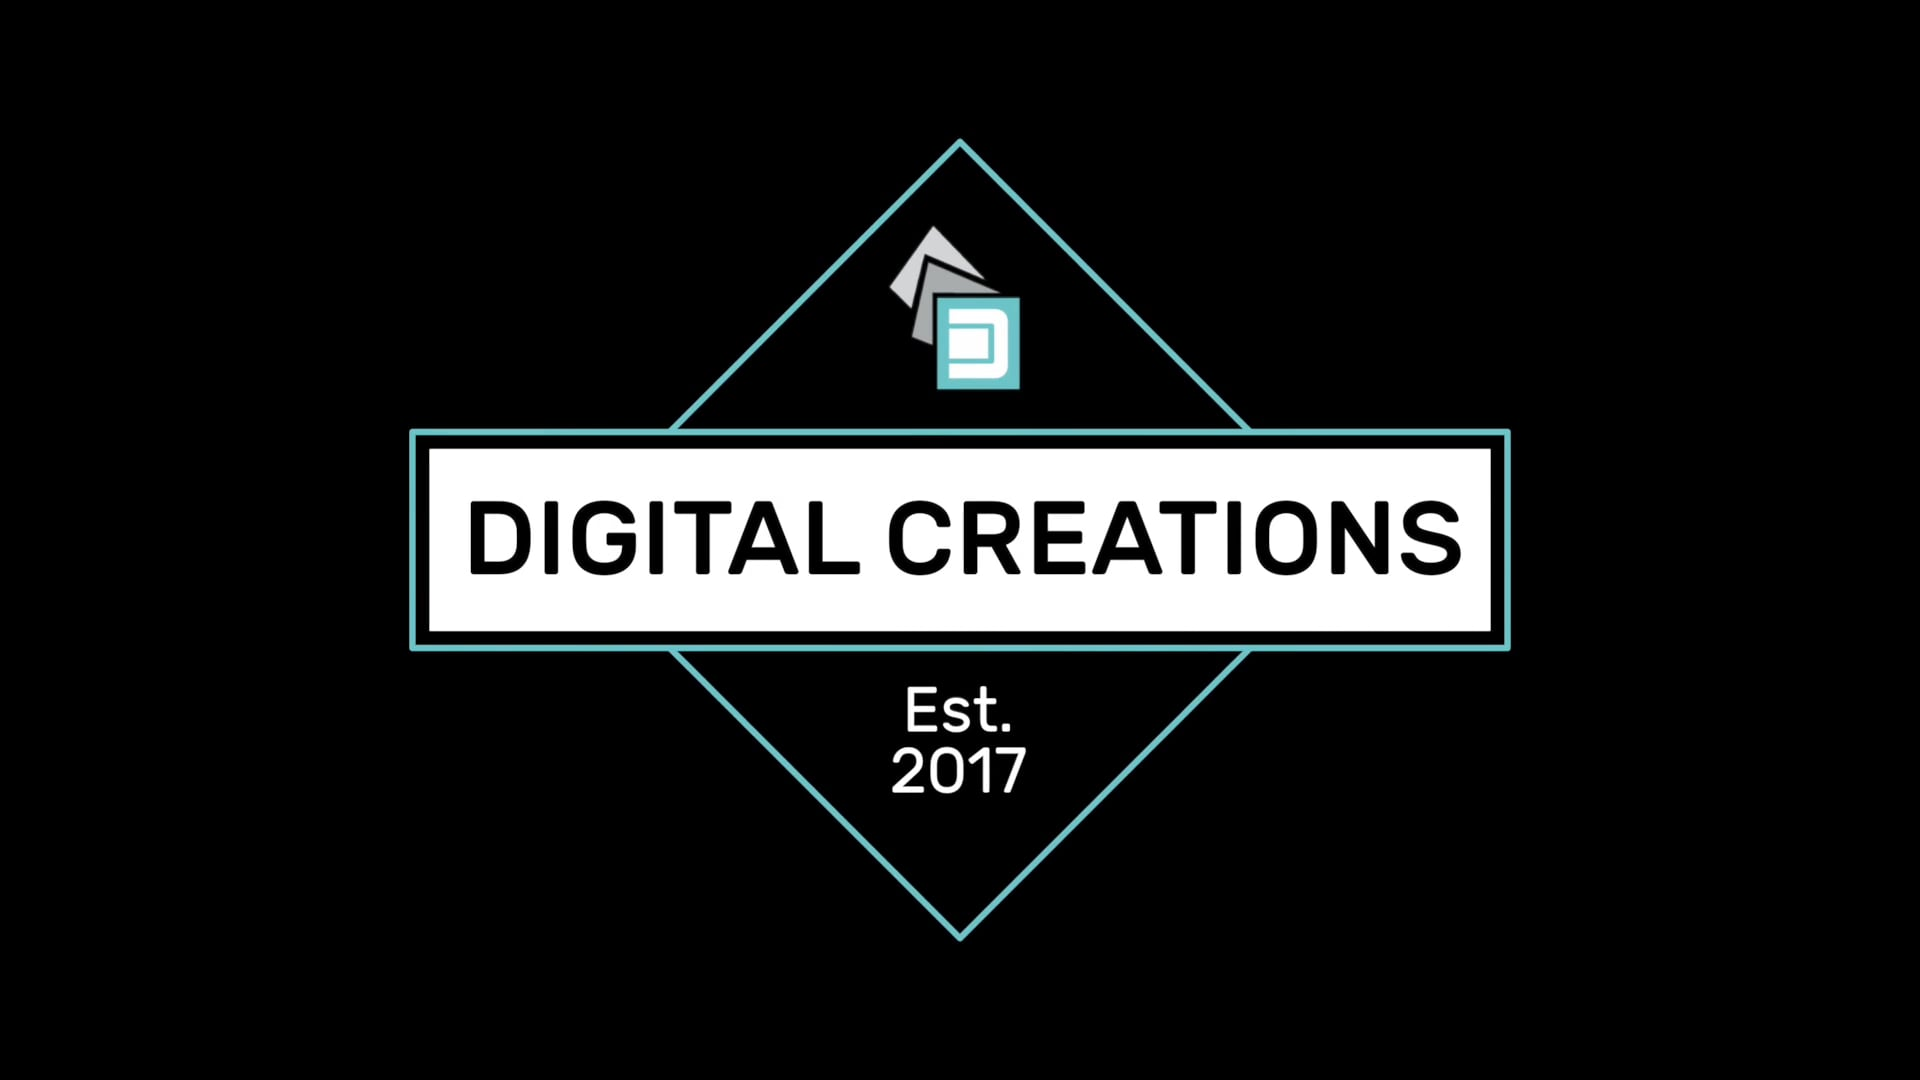 Welcome to DIGITAL CREATIONS